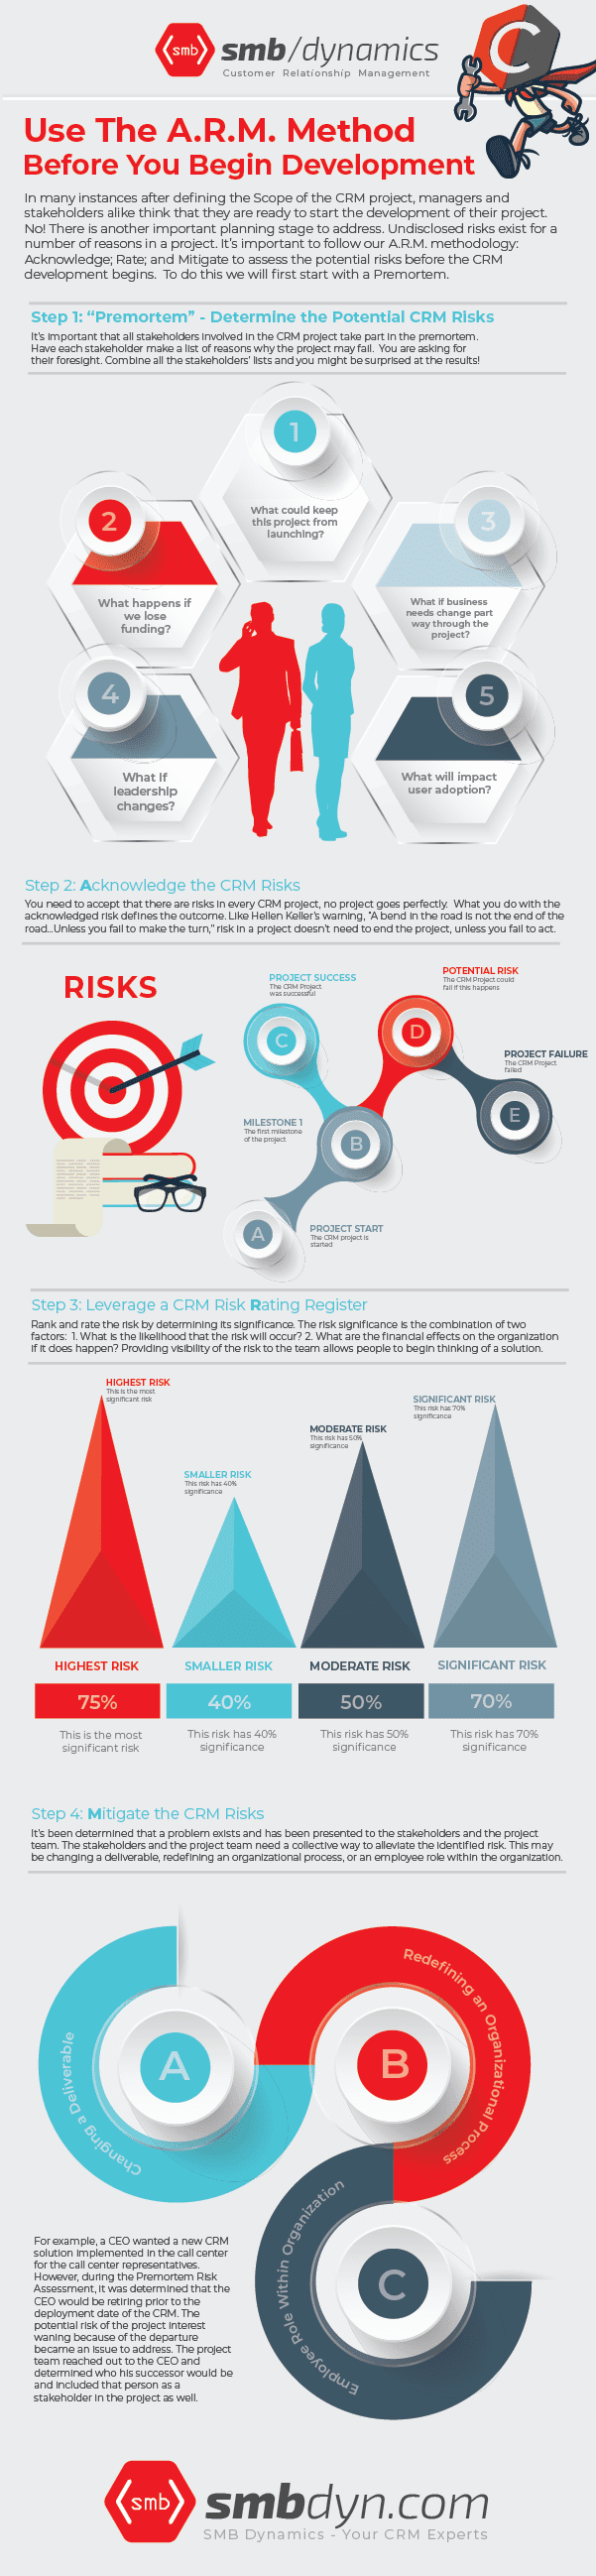 A.R.M. your CRM project for success: Acknowledge; Rate; and Mitigate to assess the potential risks before your CRM development begins. Show your teams this infographic! CRM Mechanic is brought to you by https://smbdyn.com/conduct-a-crm-risk-assessment-use-our-a-r-m-method-before-you-begin-development/ #CRM #advice #troubleshooting #management #help